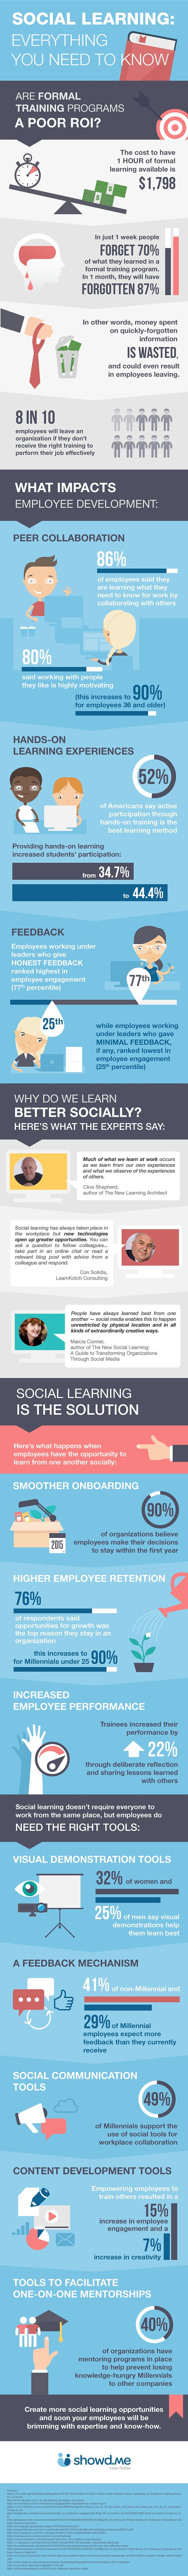 The ROI of Social Learning Infographic - http://elearninginfographics.com/roi-social-learning-infographic/